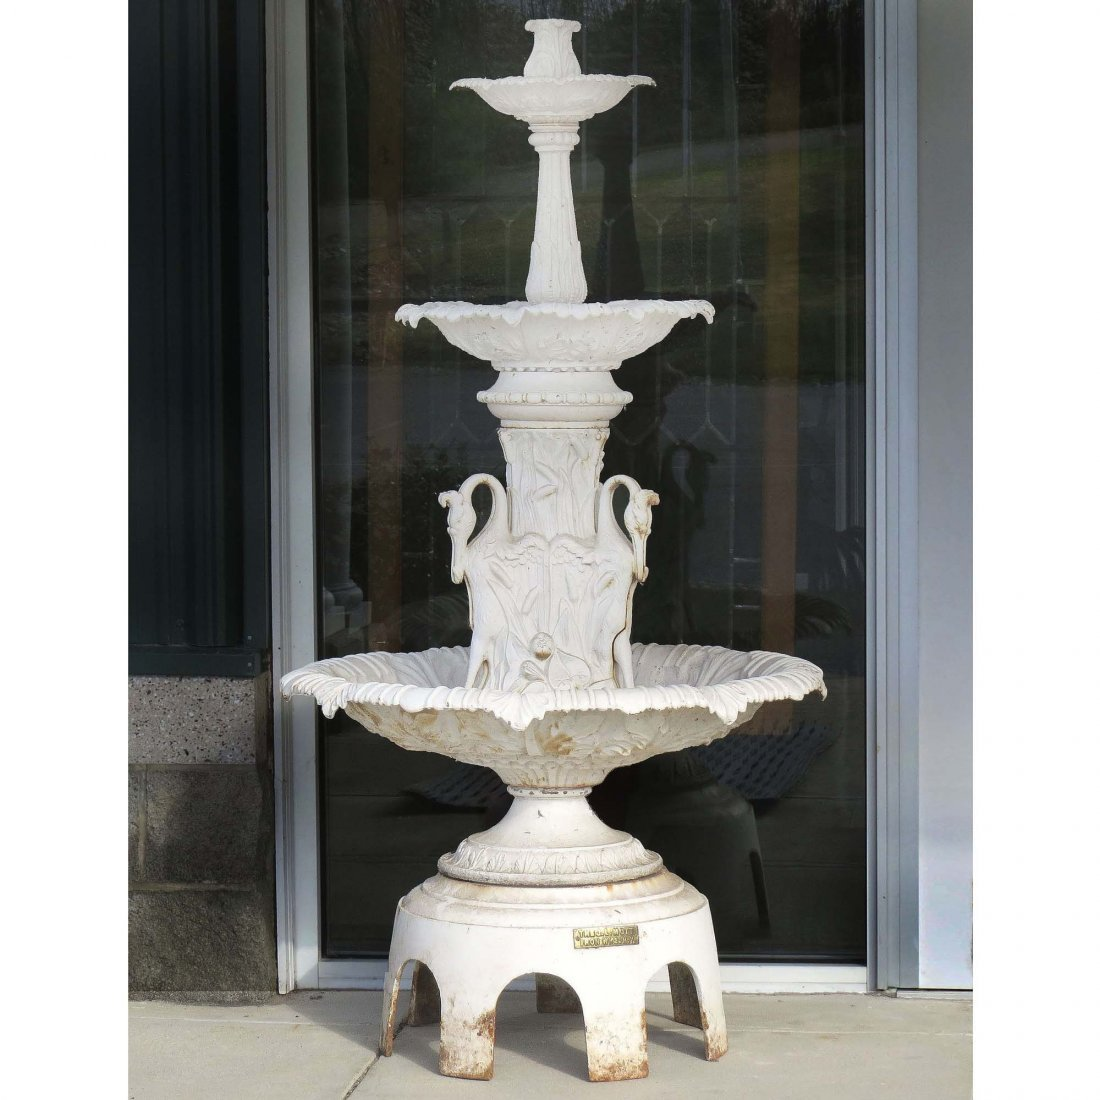 J.L. MOTT, NEW YORK, CAST IRON FOUNTAIN